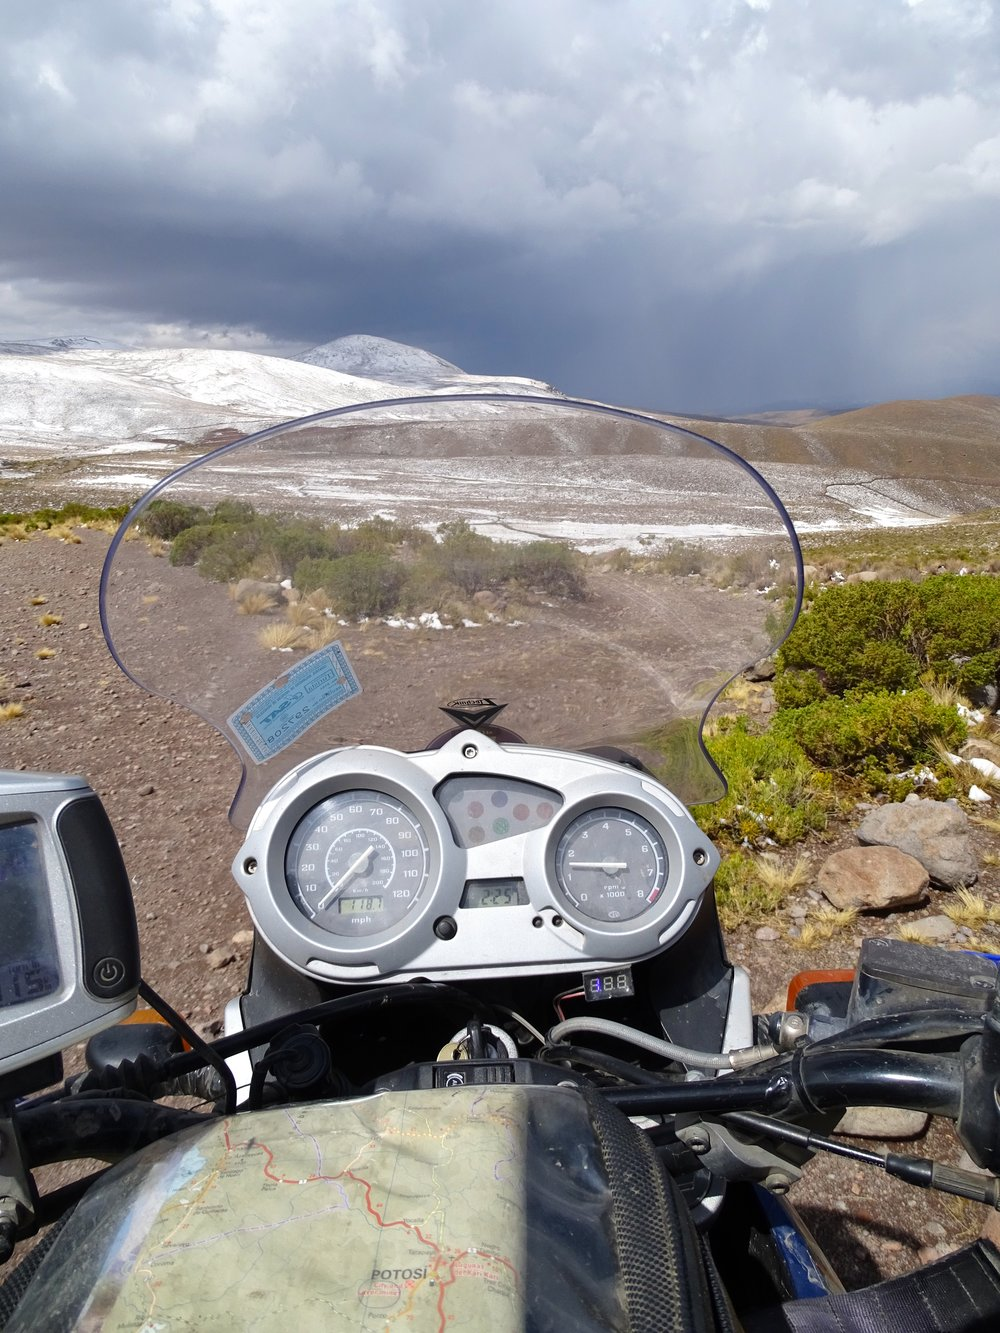 The road to Potosi, Bolivia had entertaining weather.  This is my current office environment these days.